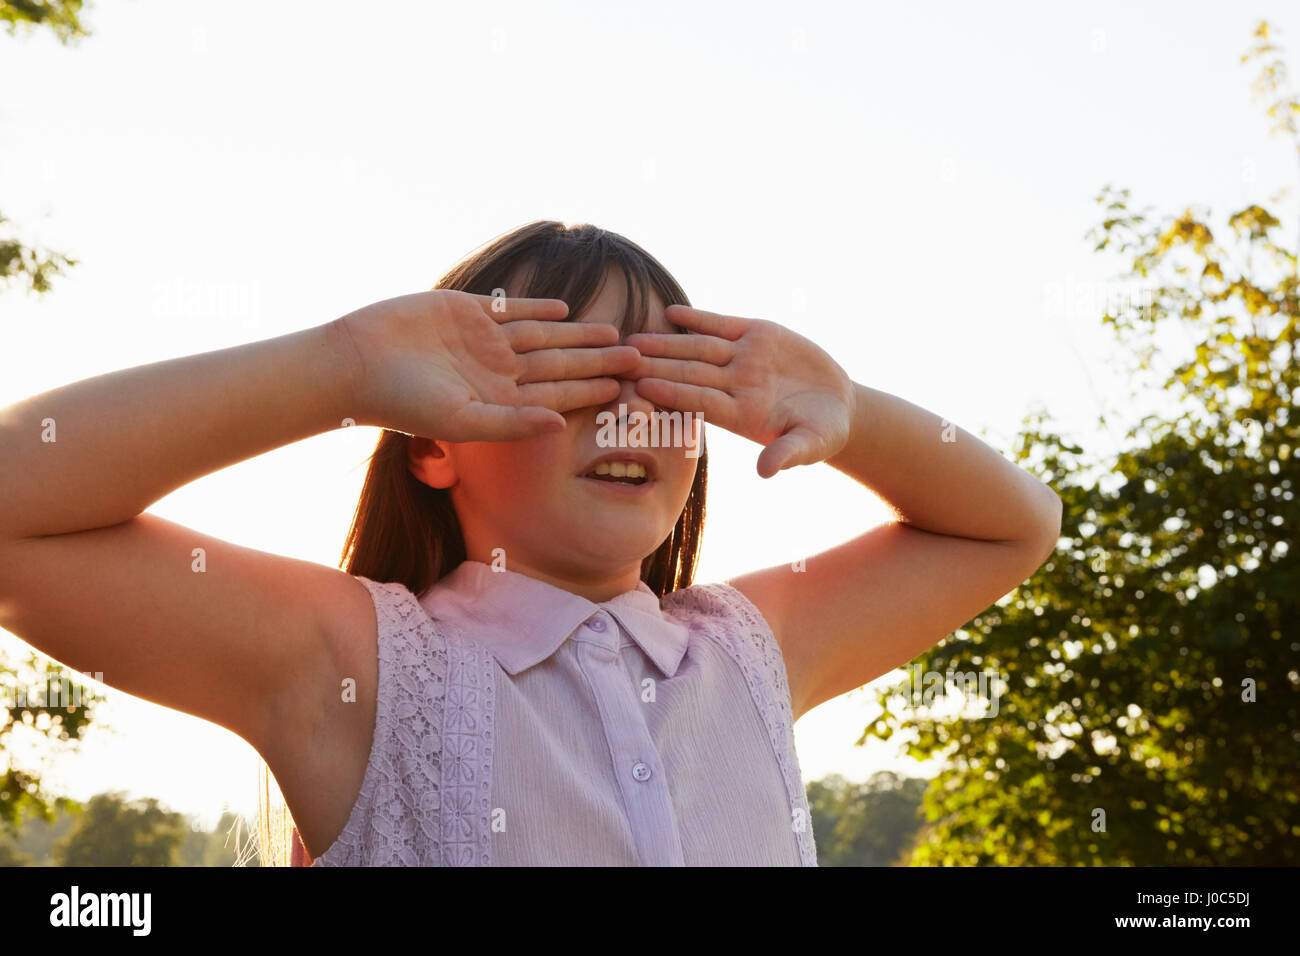 Girl covering eyes for hide and seek in park - Stock Image